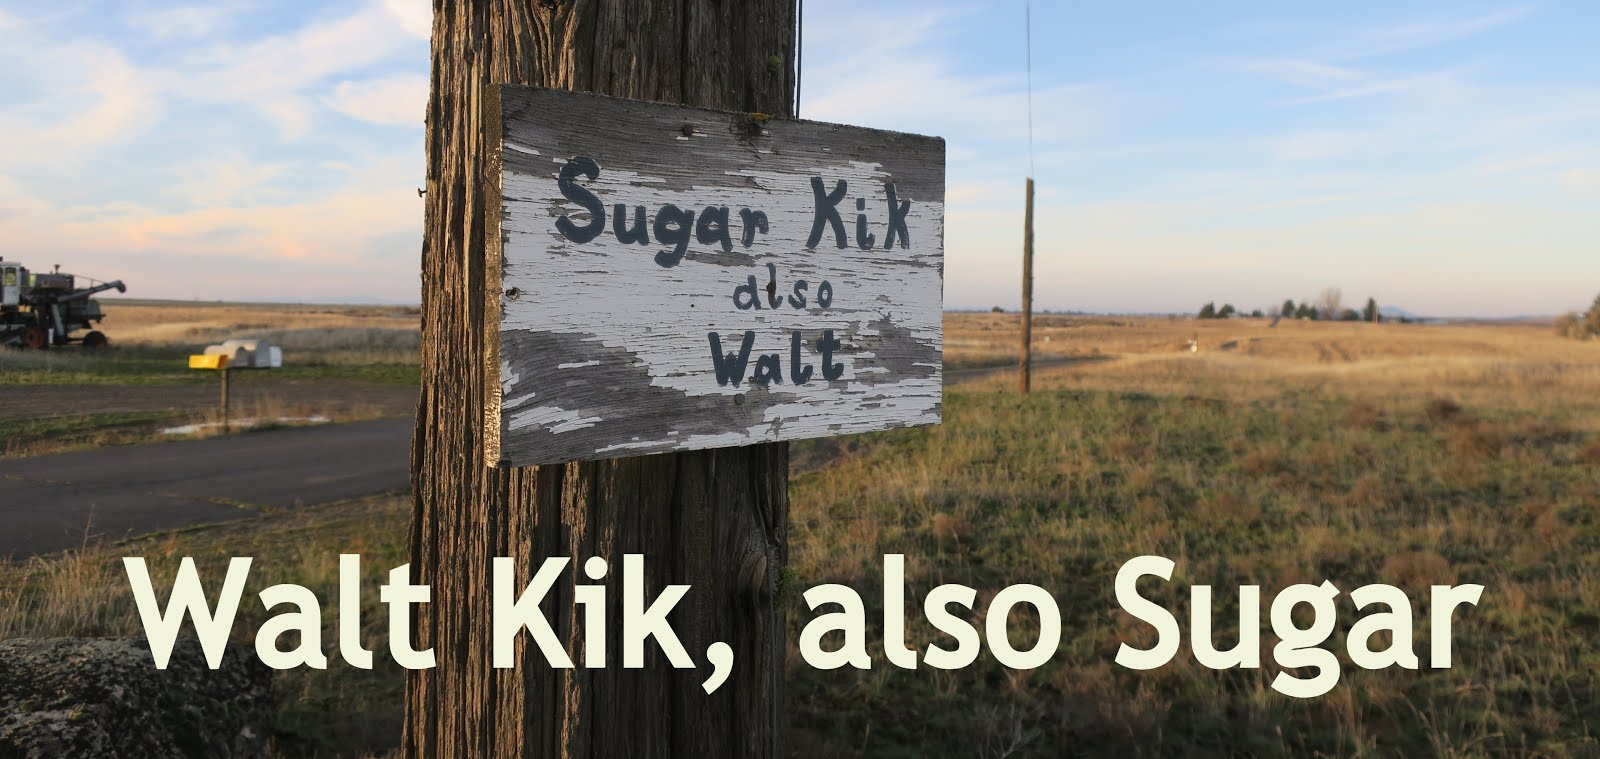 Walt Kik, also Sugar